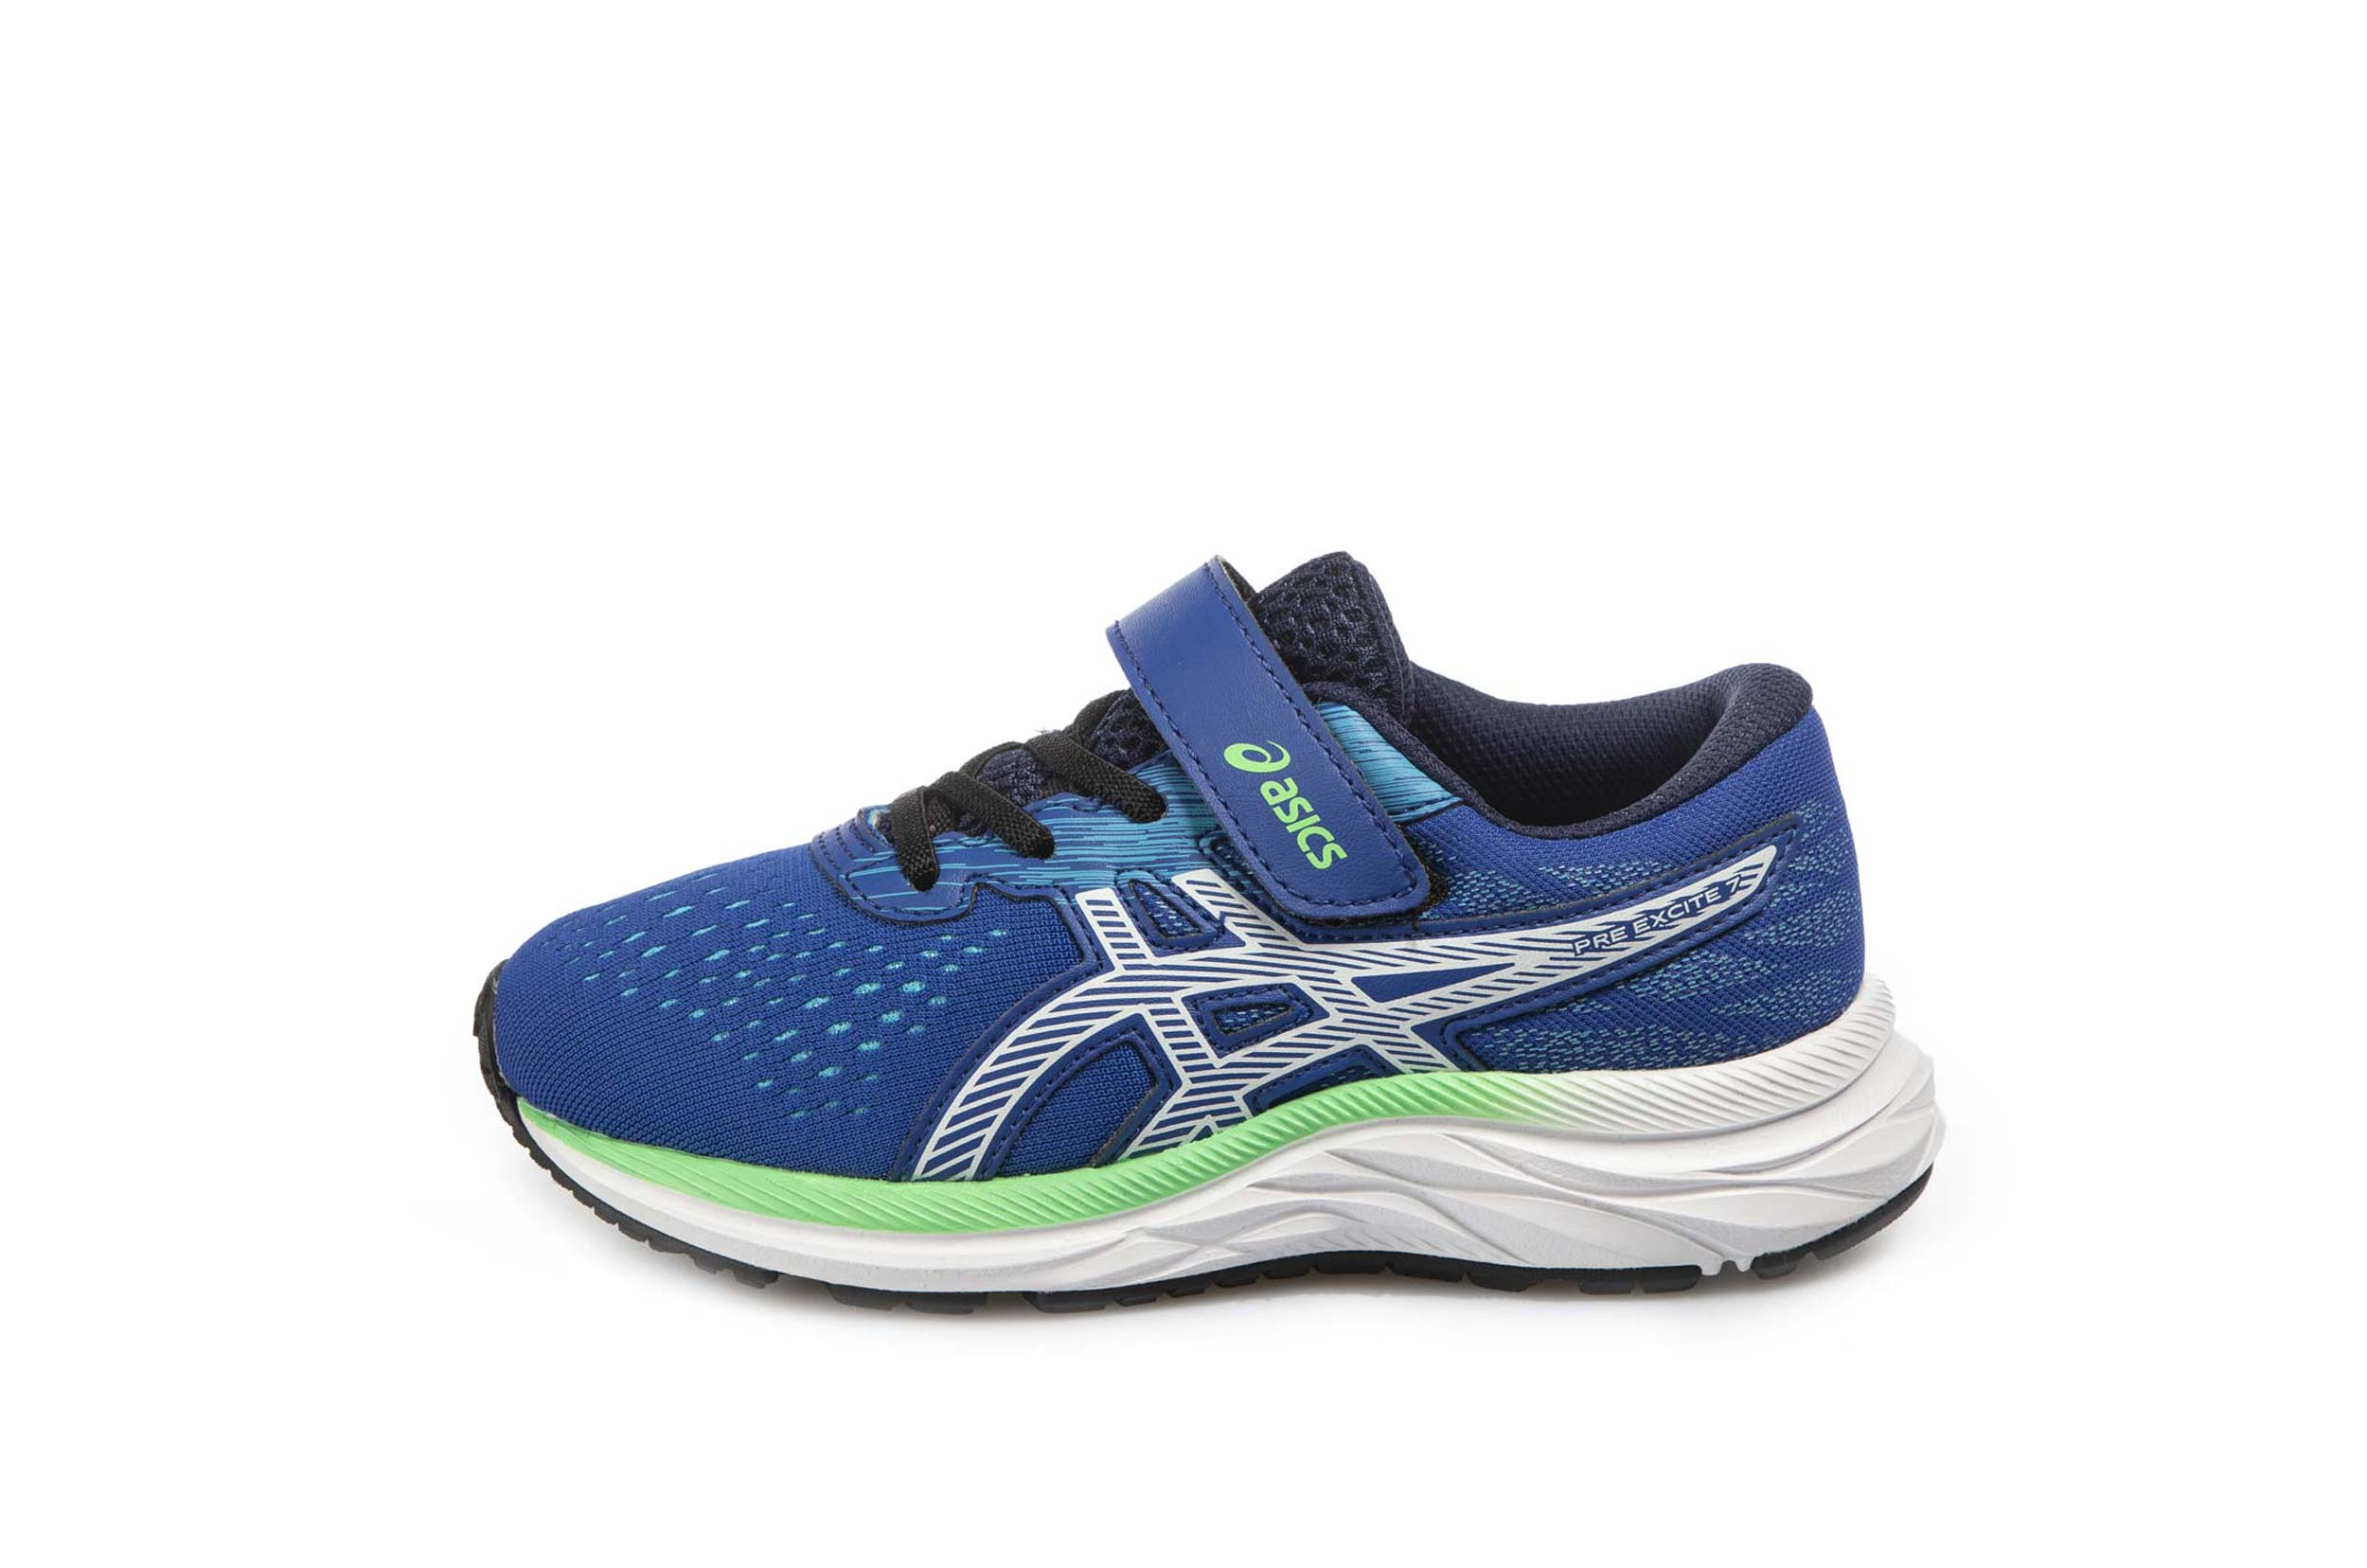 ASICS PRE EXCITE 7 PS 1014A101-401 Ρουά